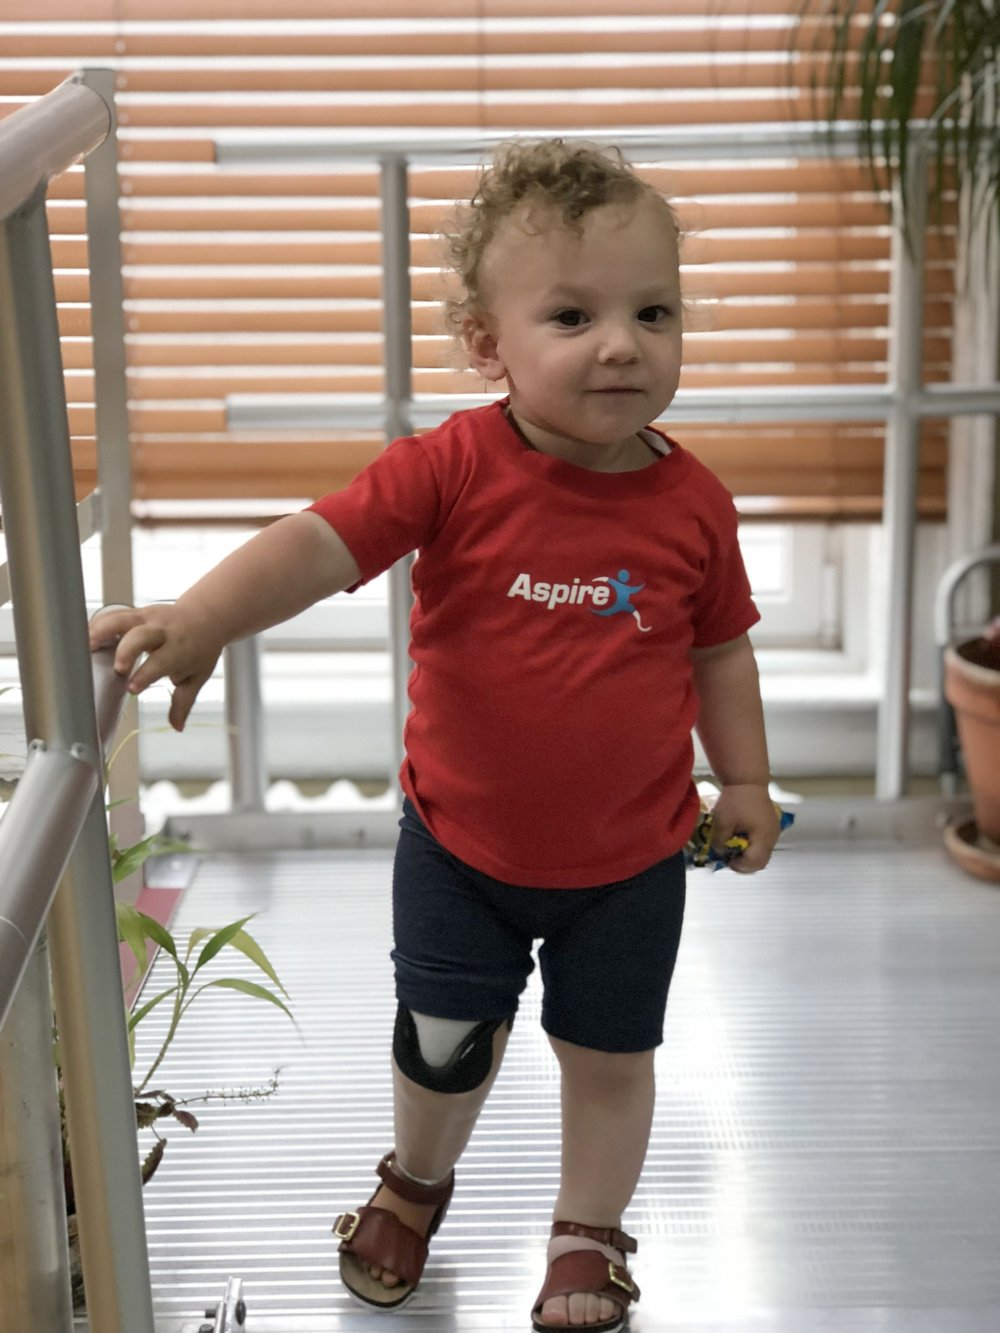 David - A congenital transtibial amputee. ASPIRE has provided several prosthetic legs for David as he progresses through his developmental stages, allowing him to learn how to walk.